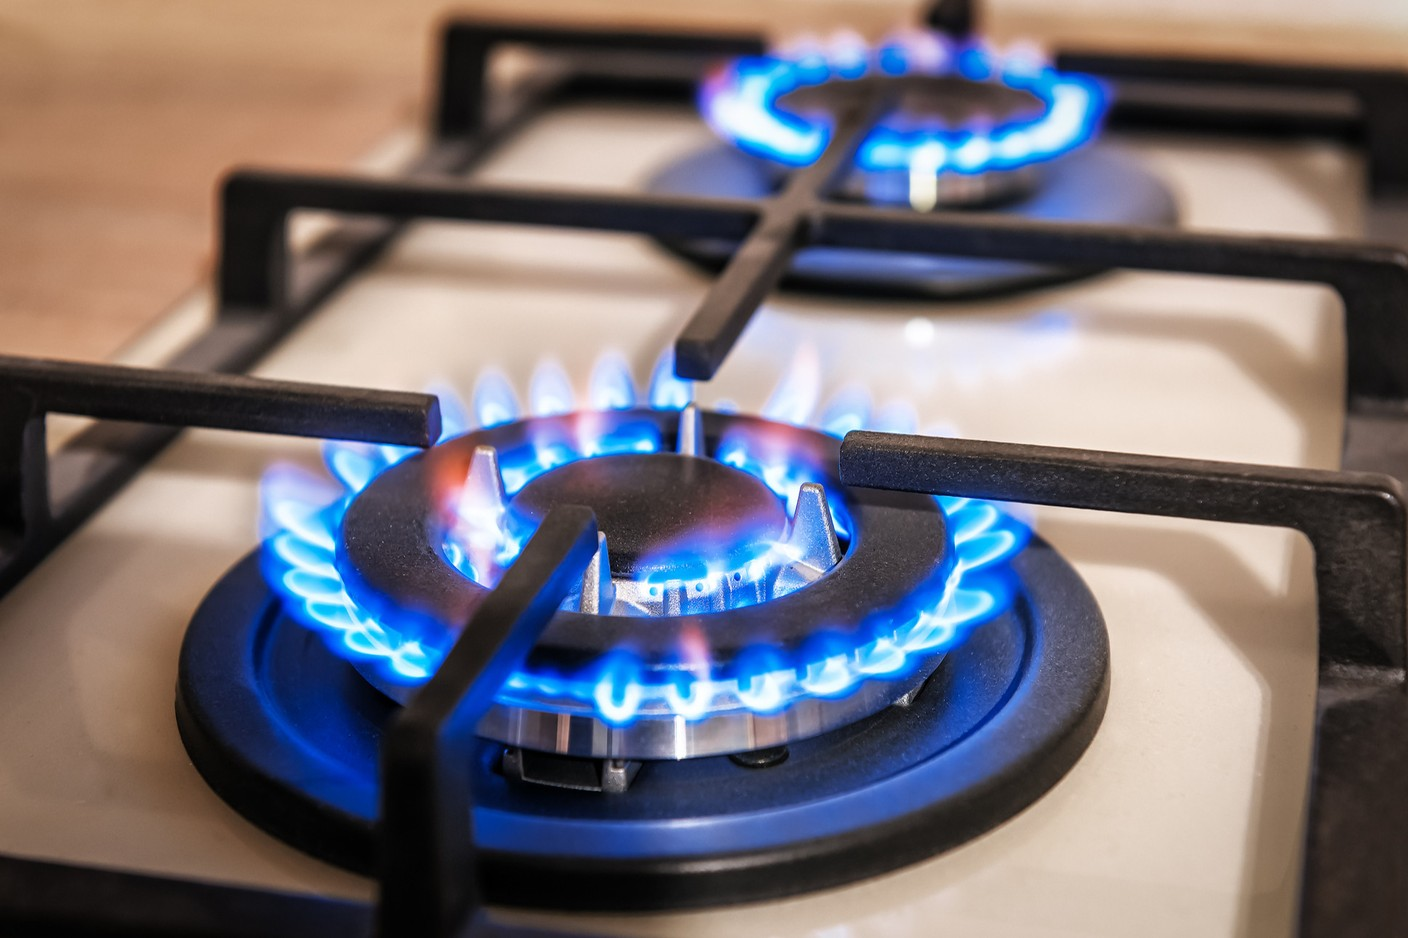 With gas prices up between 25 and 32%, Luxembourg residential customers could face an increase in their annual gas bill of anything between €300 and €384 in 2021. (Photo: Shutterstock)